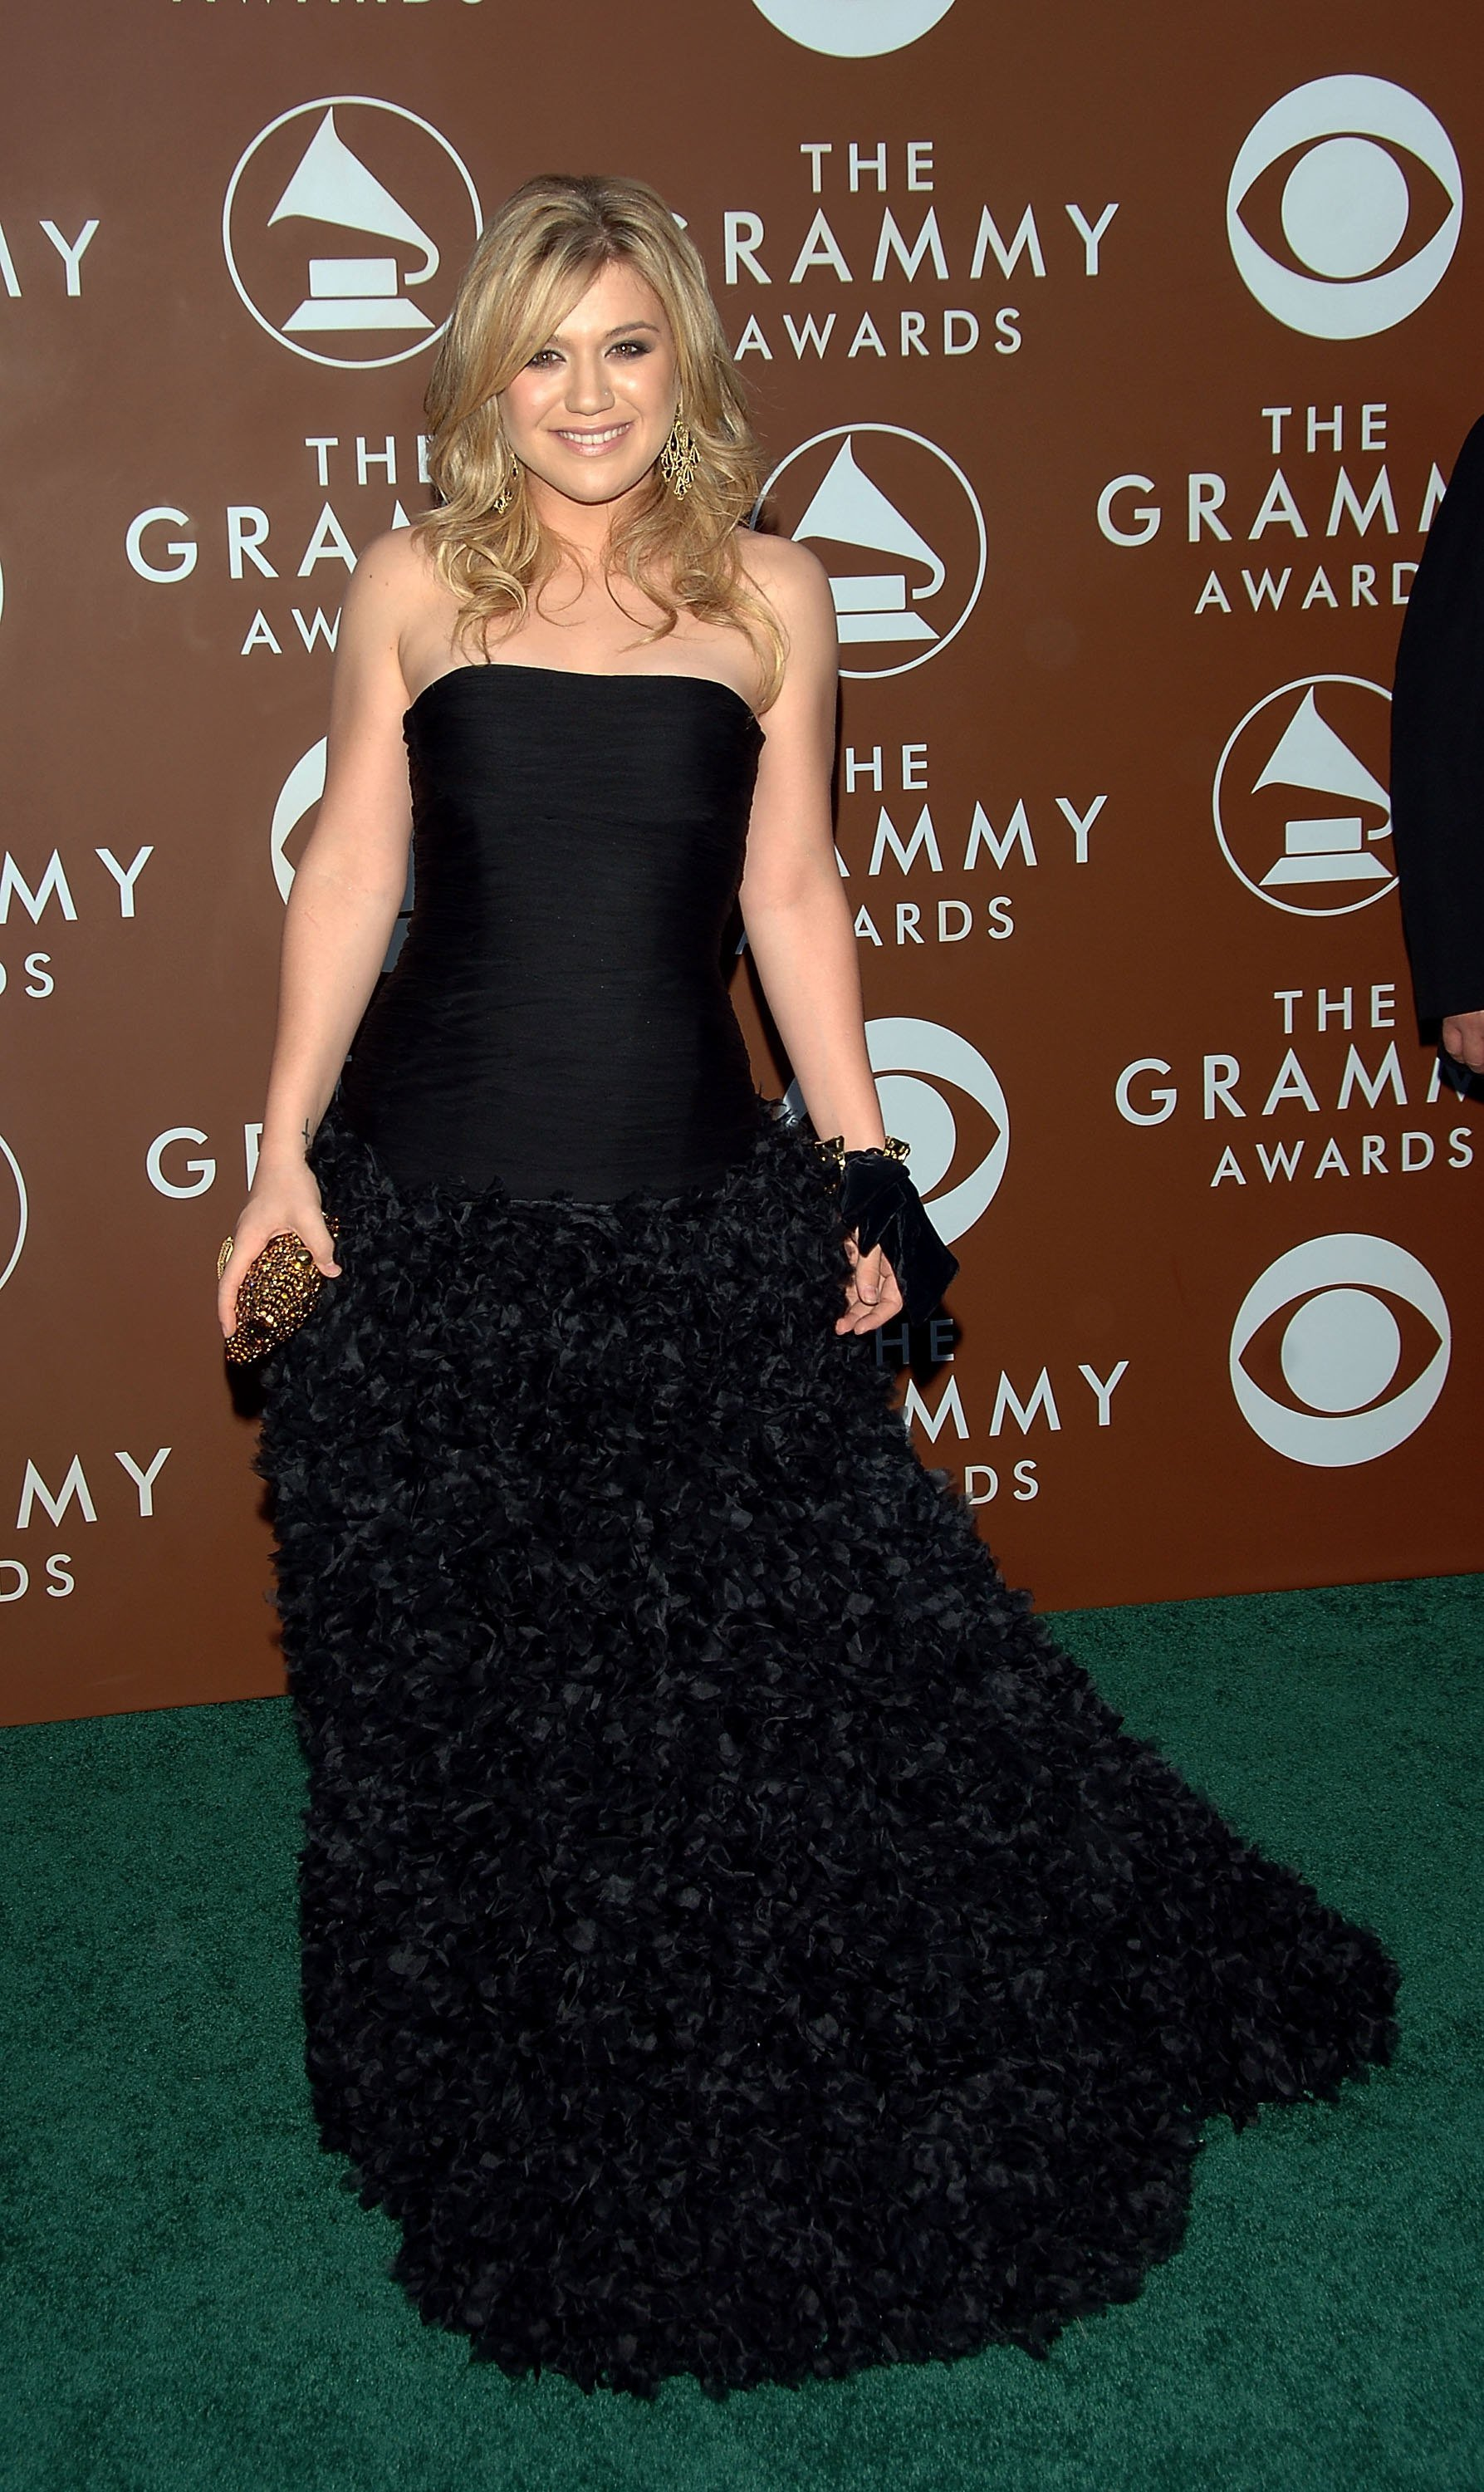 Image Source: Getty Images/Kelly at The Grammy's